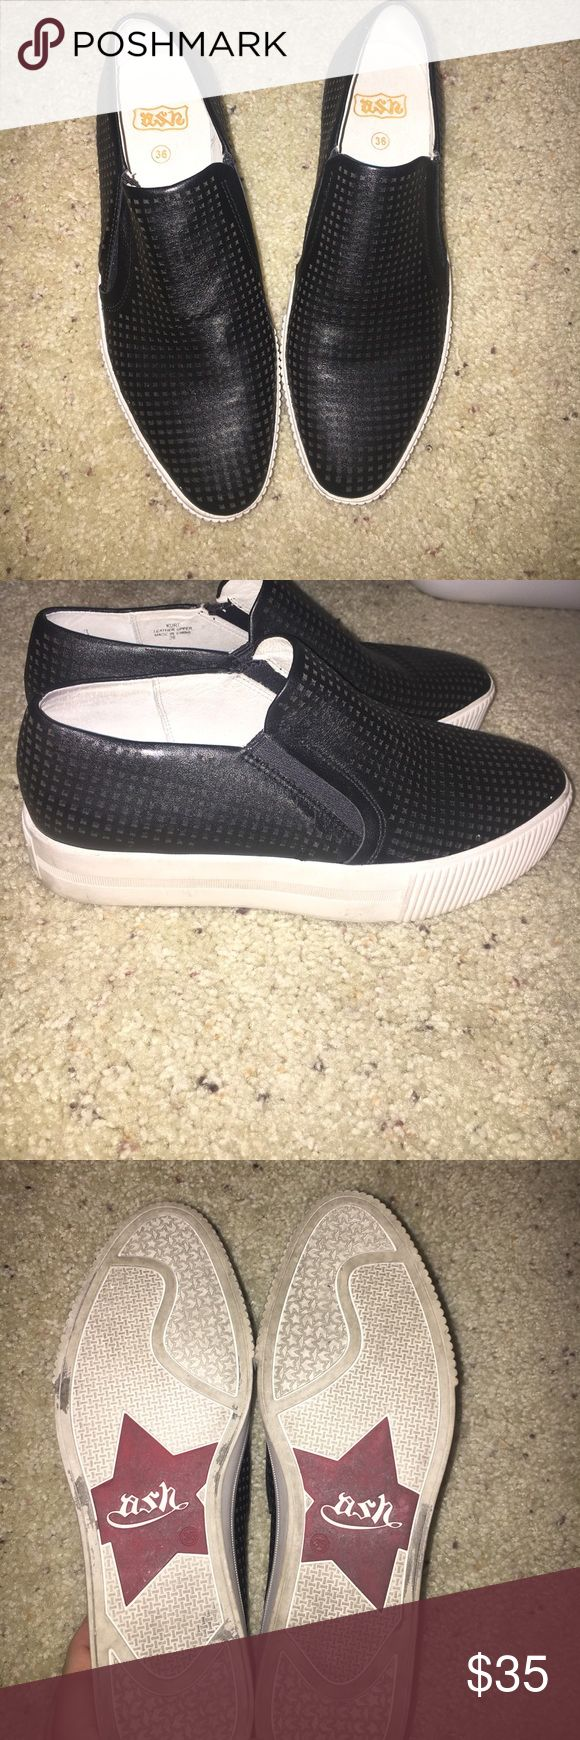 Black Ash Leather Platform Tennis Shoes Size 26/worn a couple of times/good condition/pointed toe/Message me with any questions/Thanks for looking! Ash Shoes Platforms